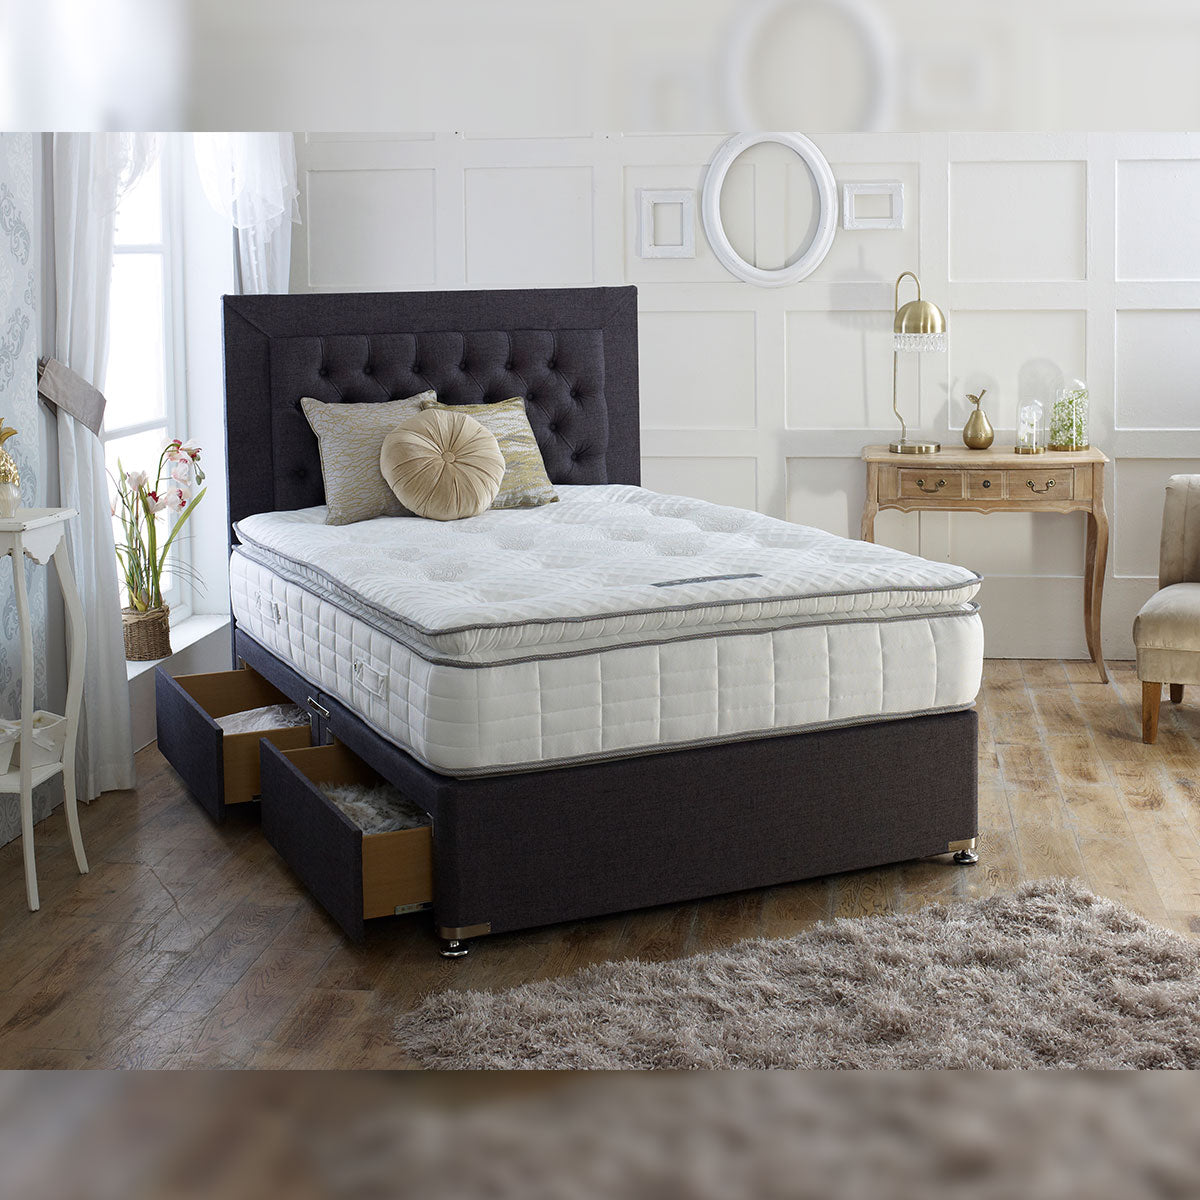 Calgary 1000 Pocket Pillow Top Style Mattress